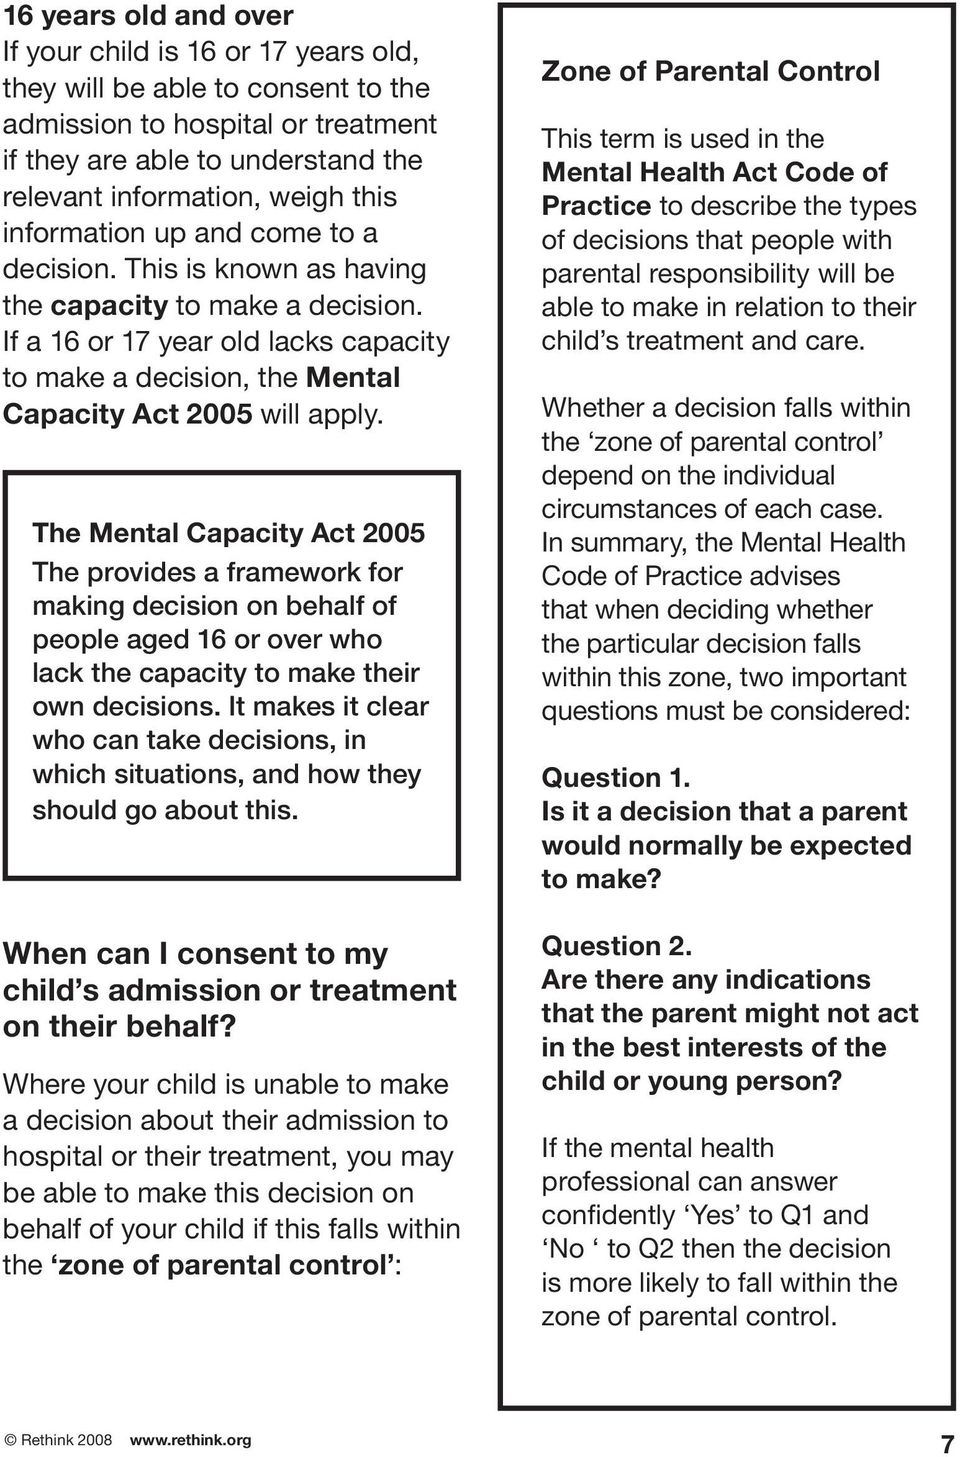 The Mental Capacity Act 2005 The provides a framework for making decision on behalf of people aged 16 or over who lack the capacity to make their own decisions.